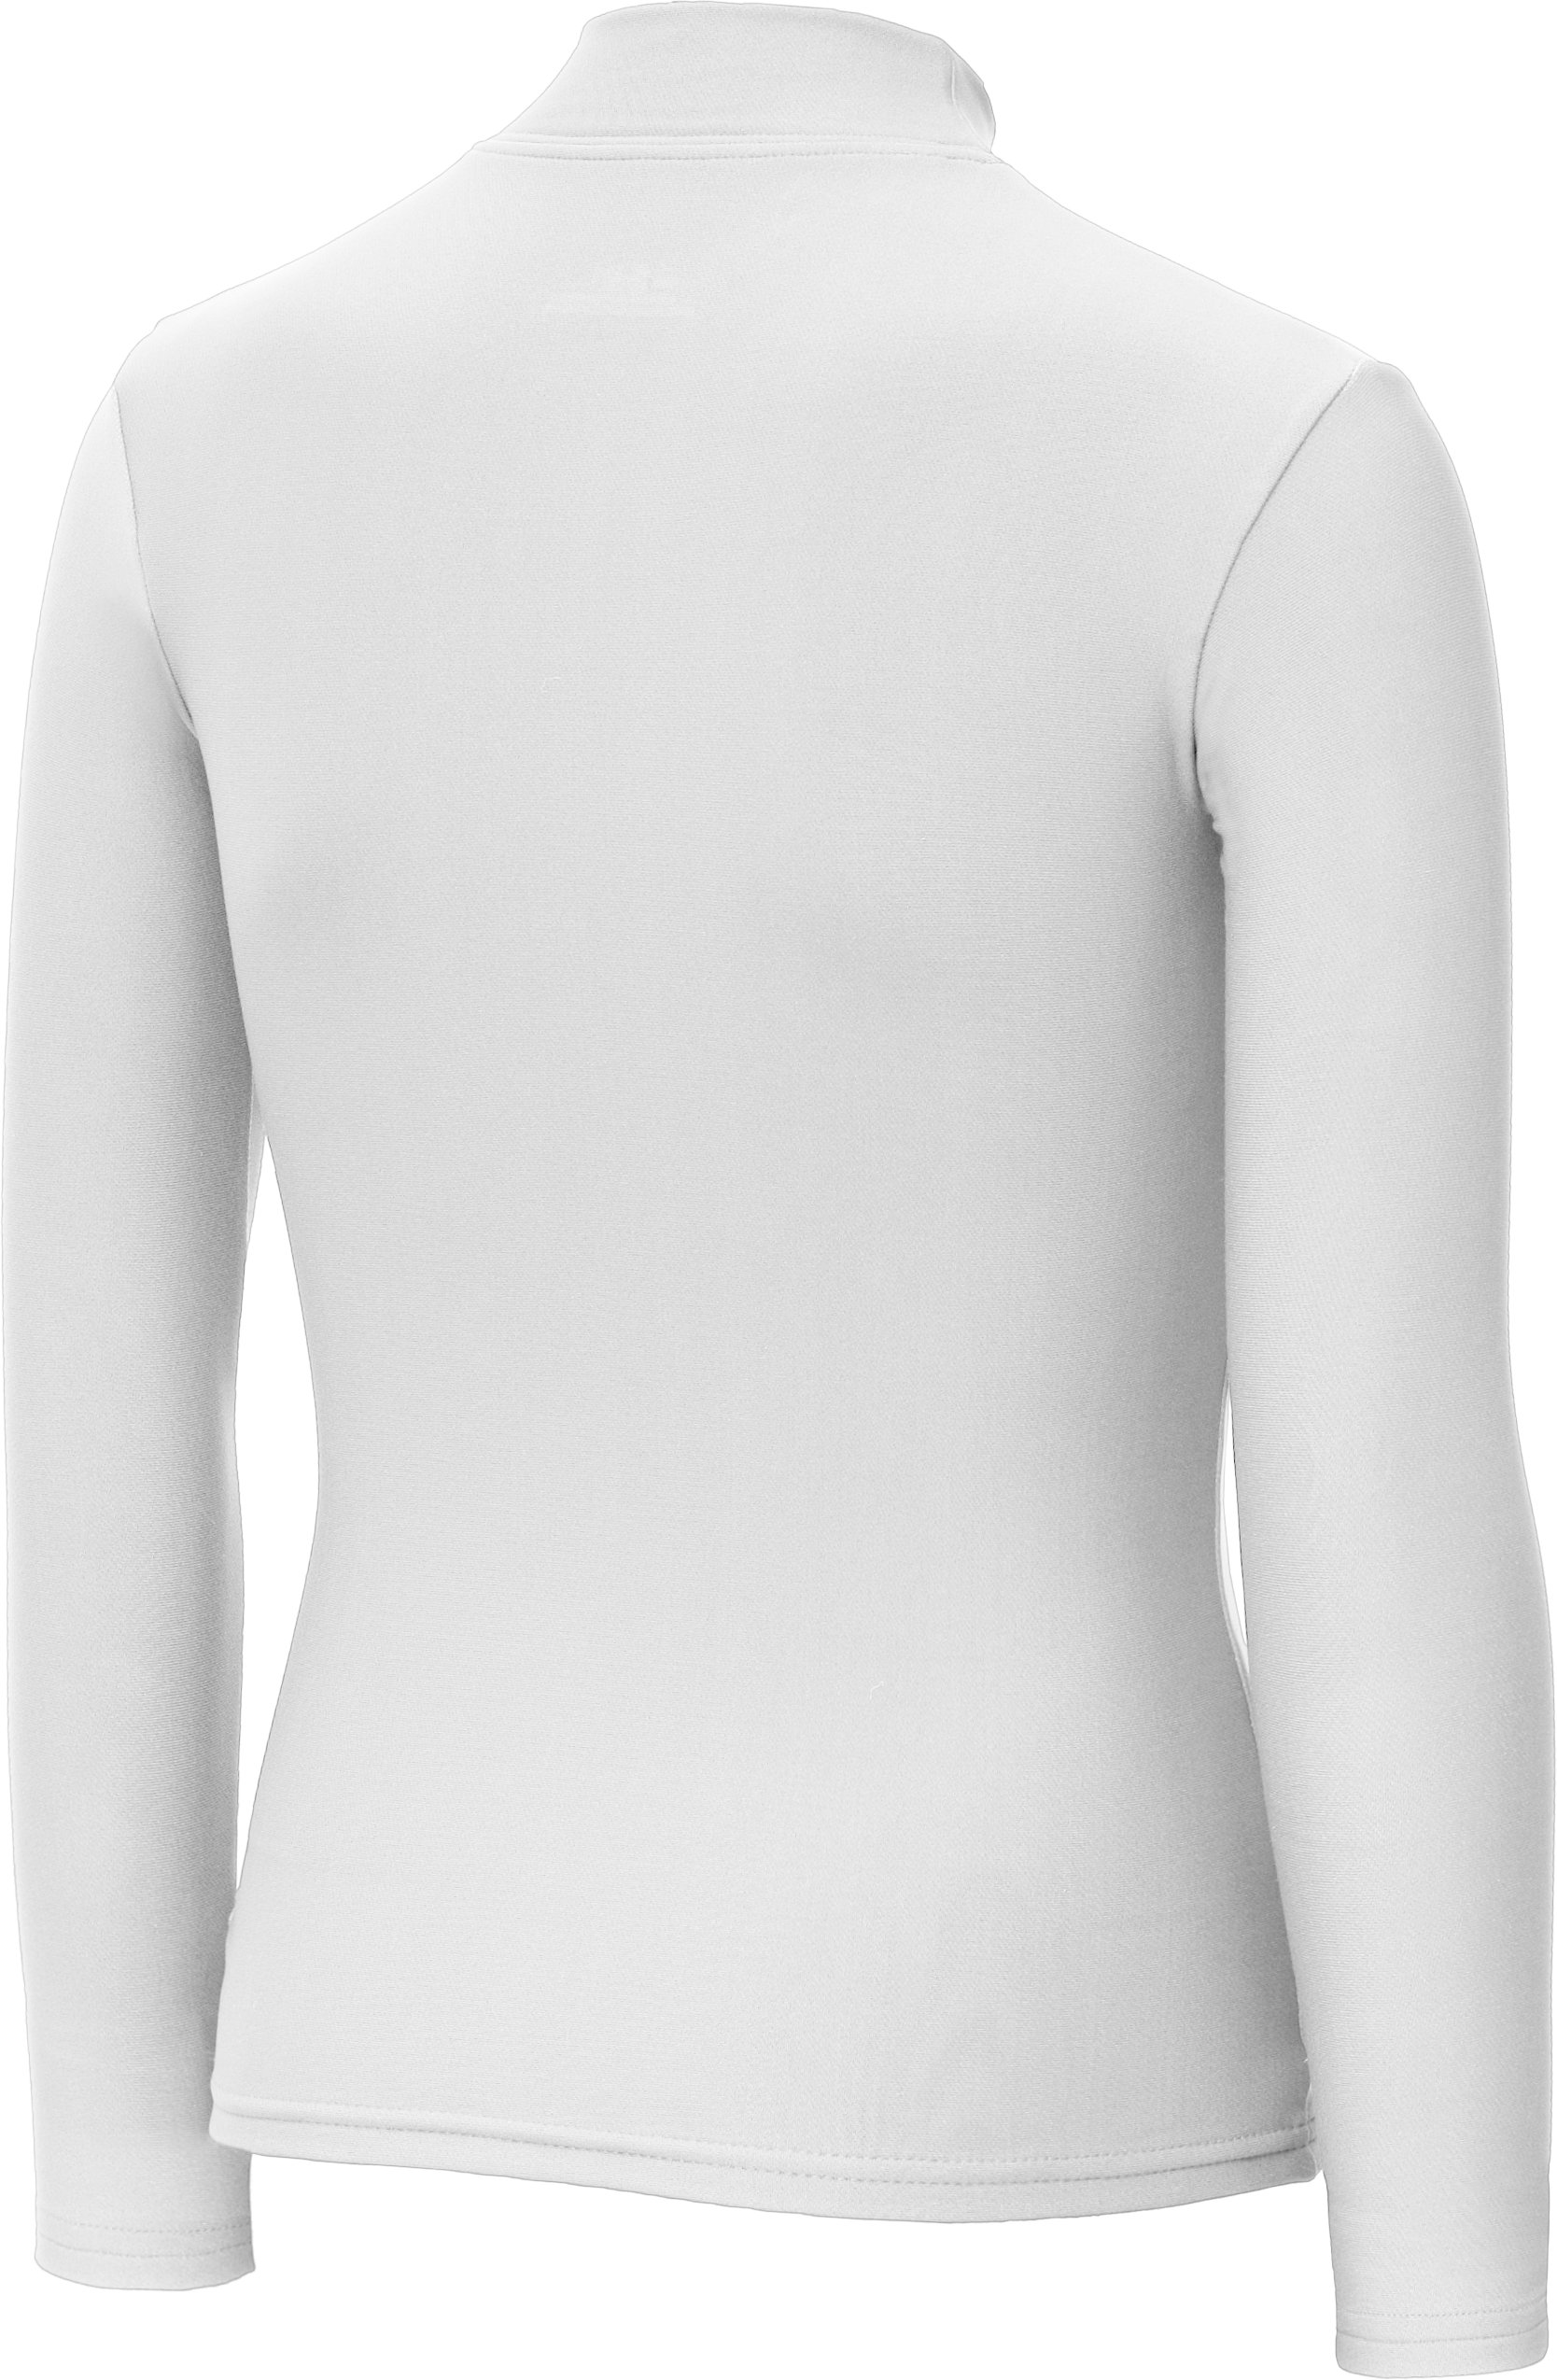 Girls' ColdGear® Fitted Long Sleeve Mock, White, undefined